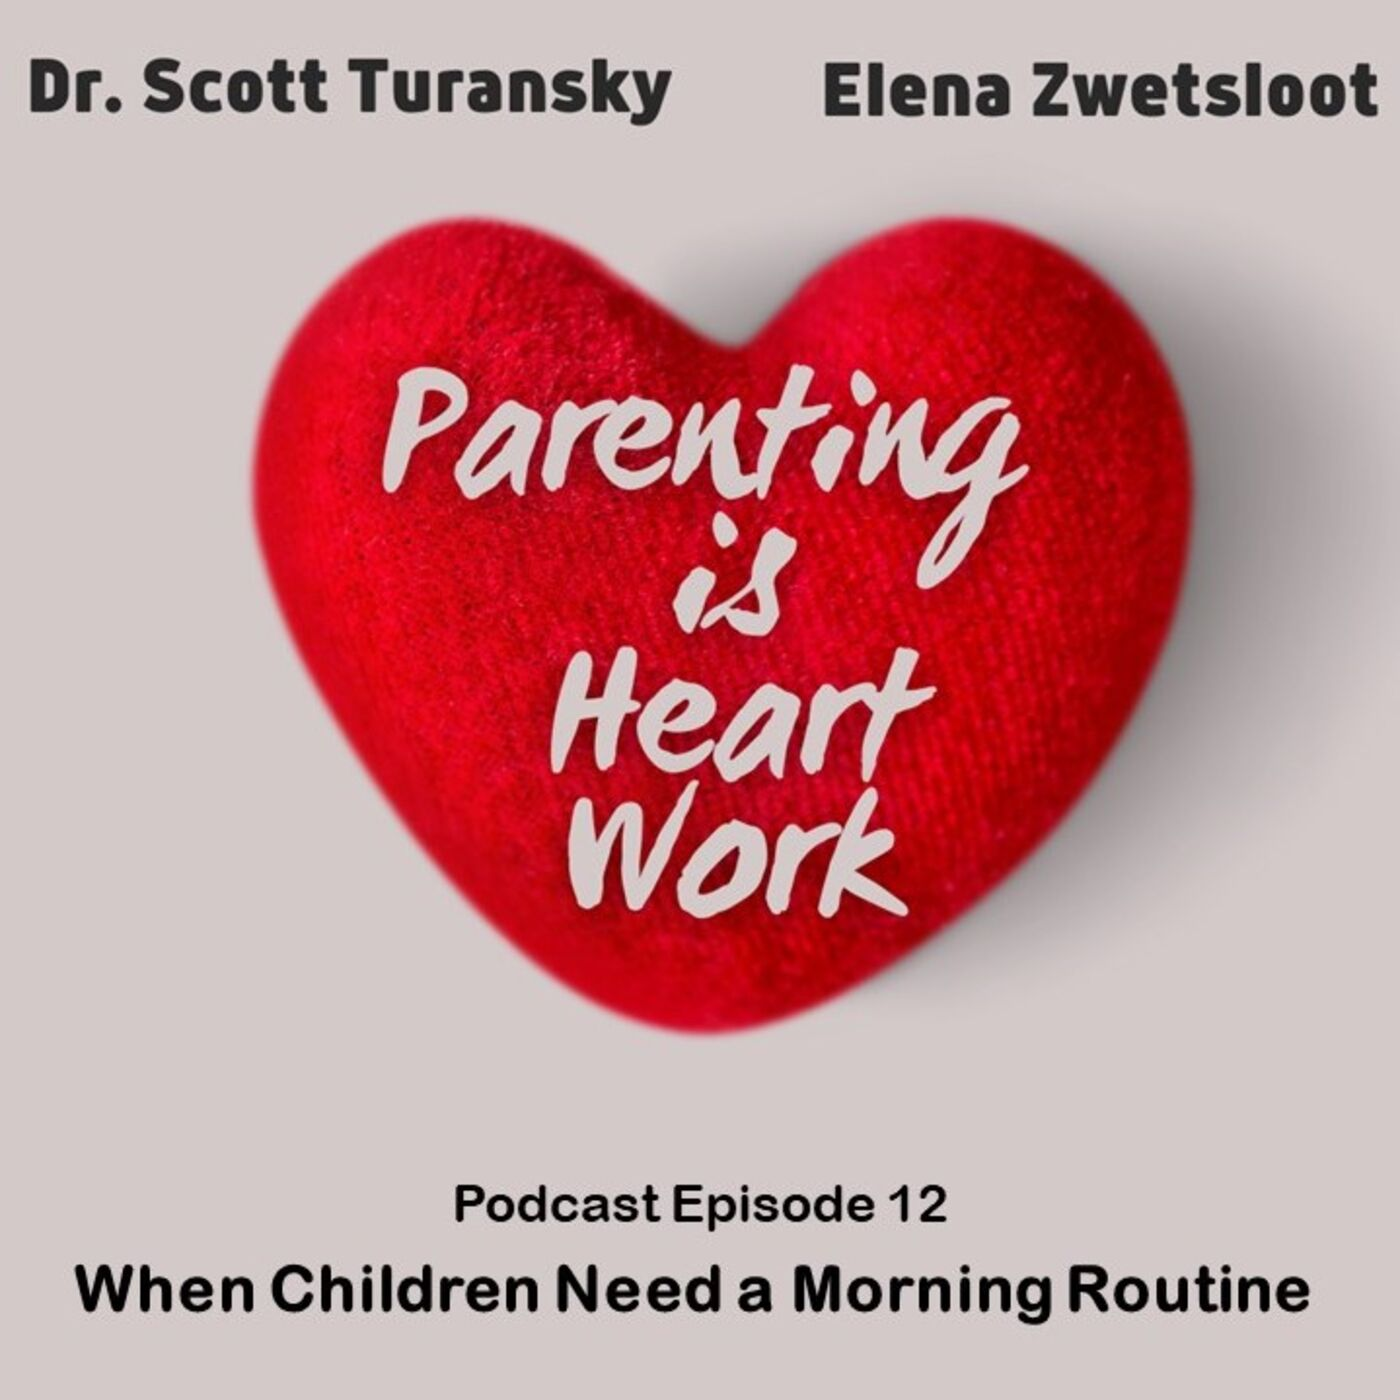 11. When Children Need a Morning Routine